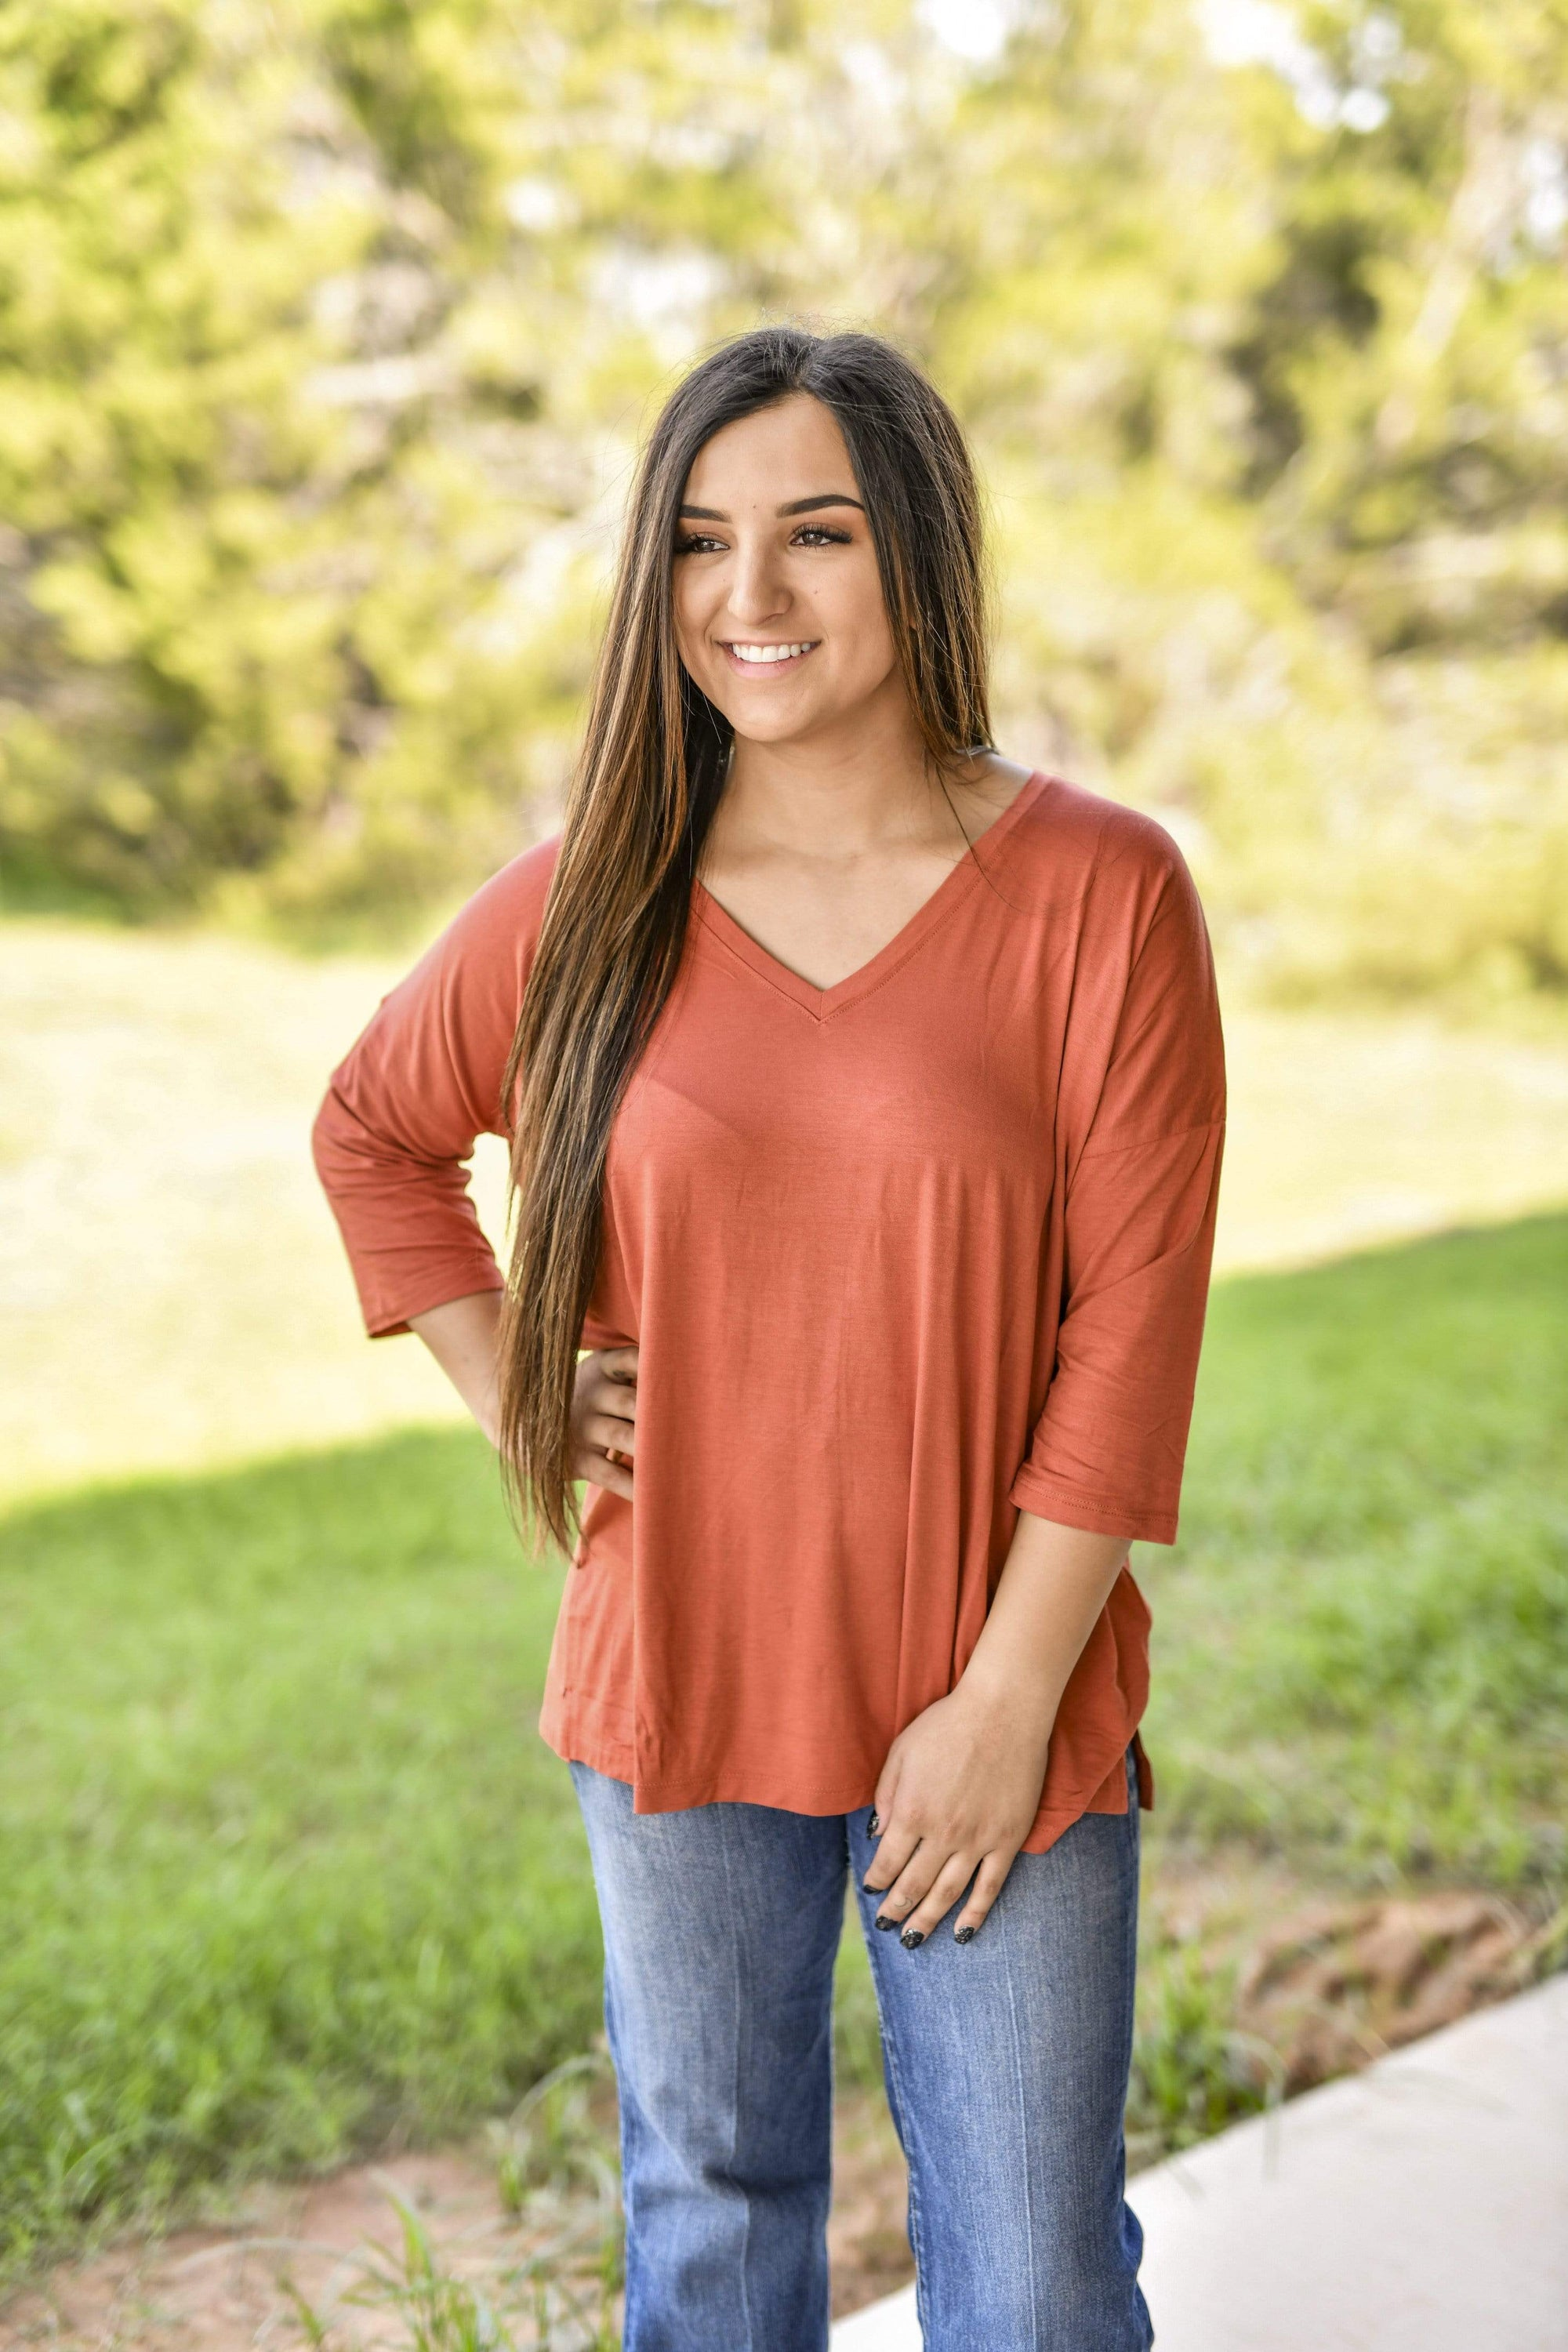 Light Weight V Neck 3/4 Sleeve - Terra Cotta